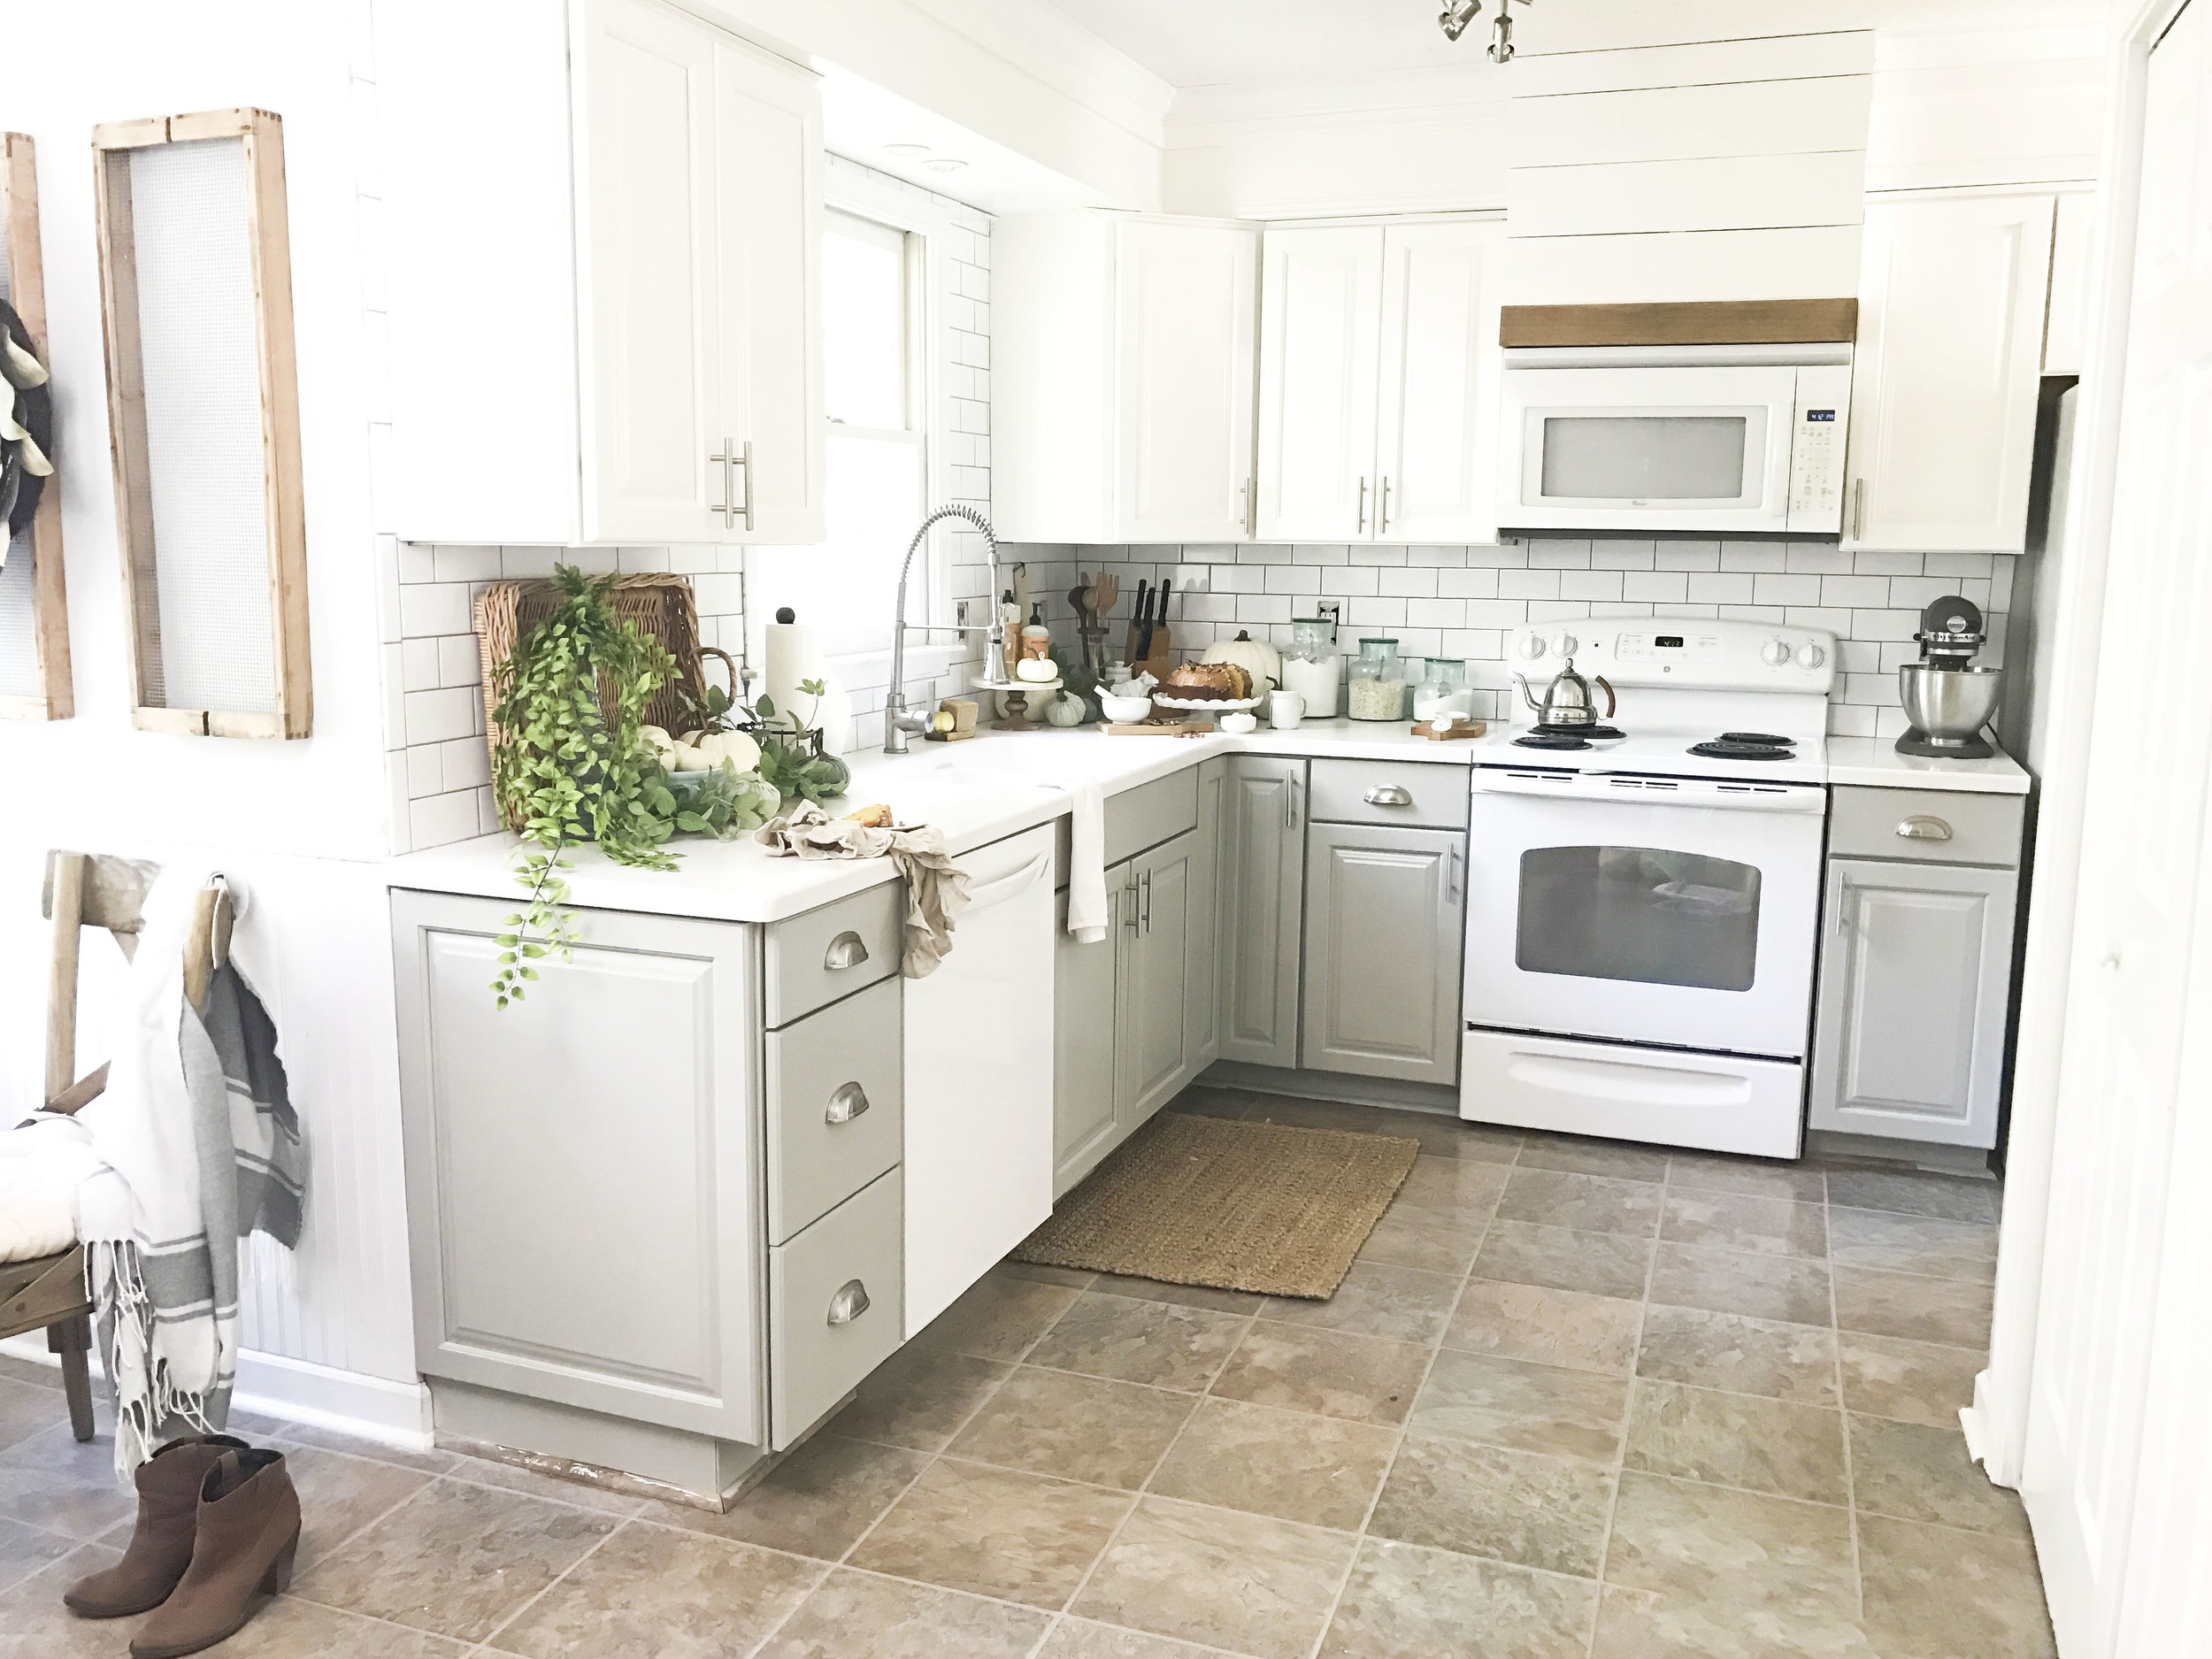 budget kitchen cabinets aqua utensils plum pretty decor design co painted fall home tour inside and